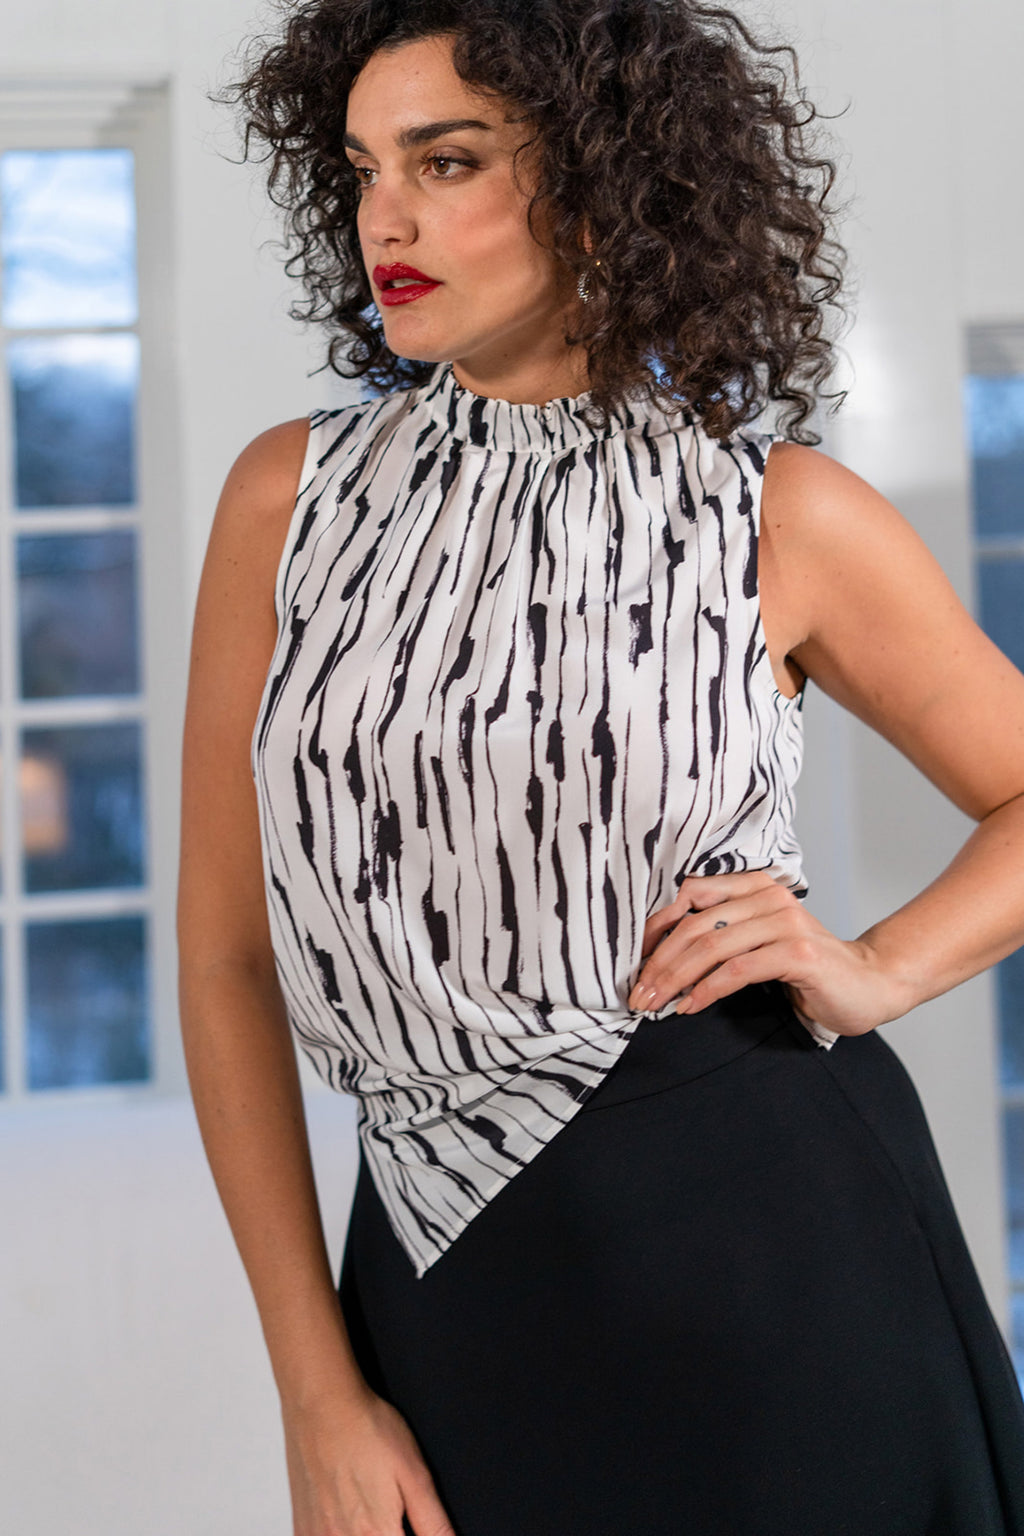 PRINTED SILK CREPE TOP in BLACK & WHITE